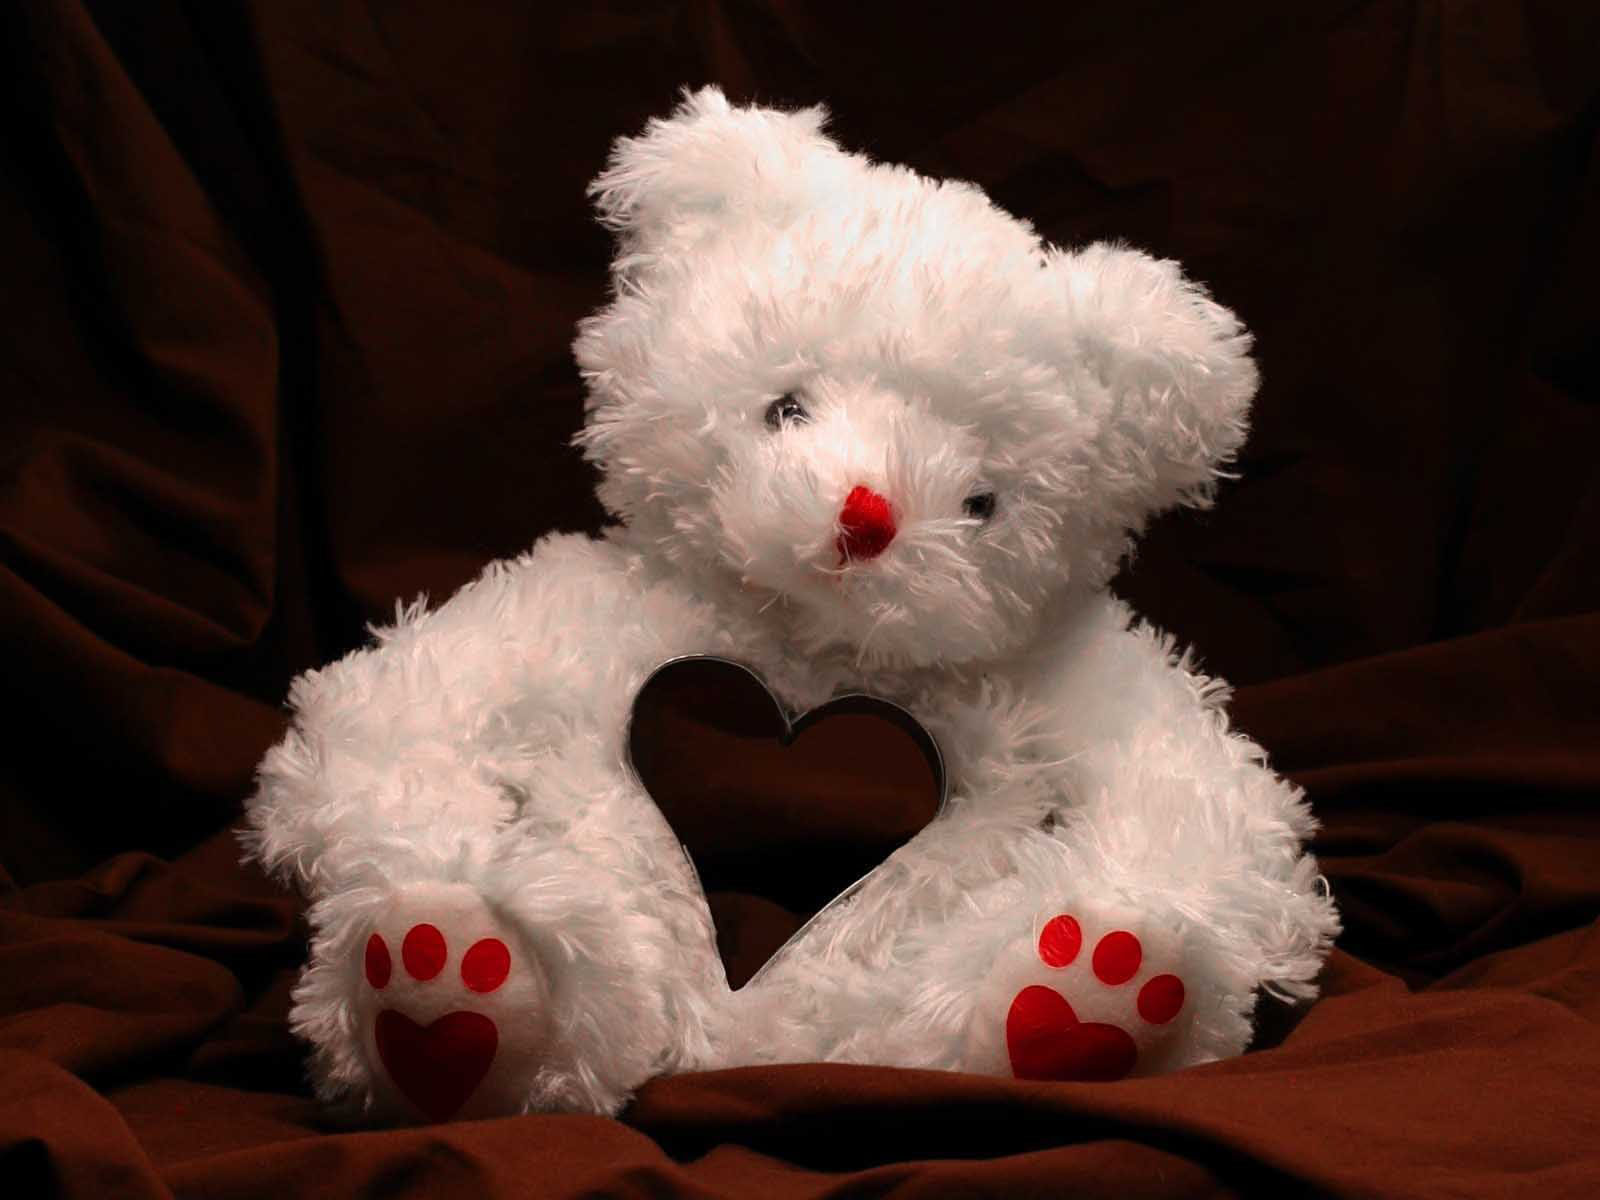 Love White Teddy Bear Wallpaper